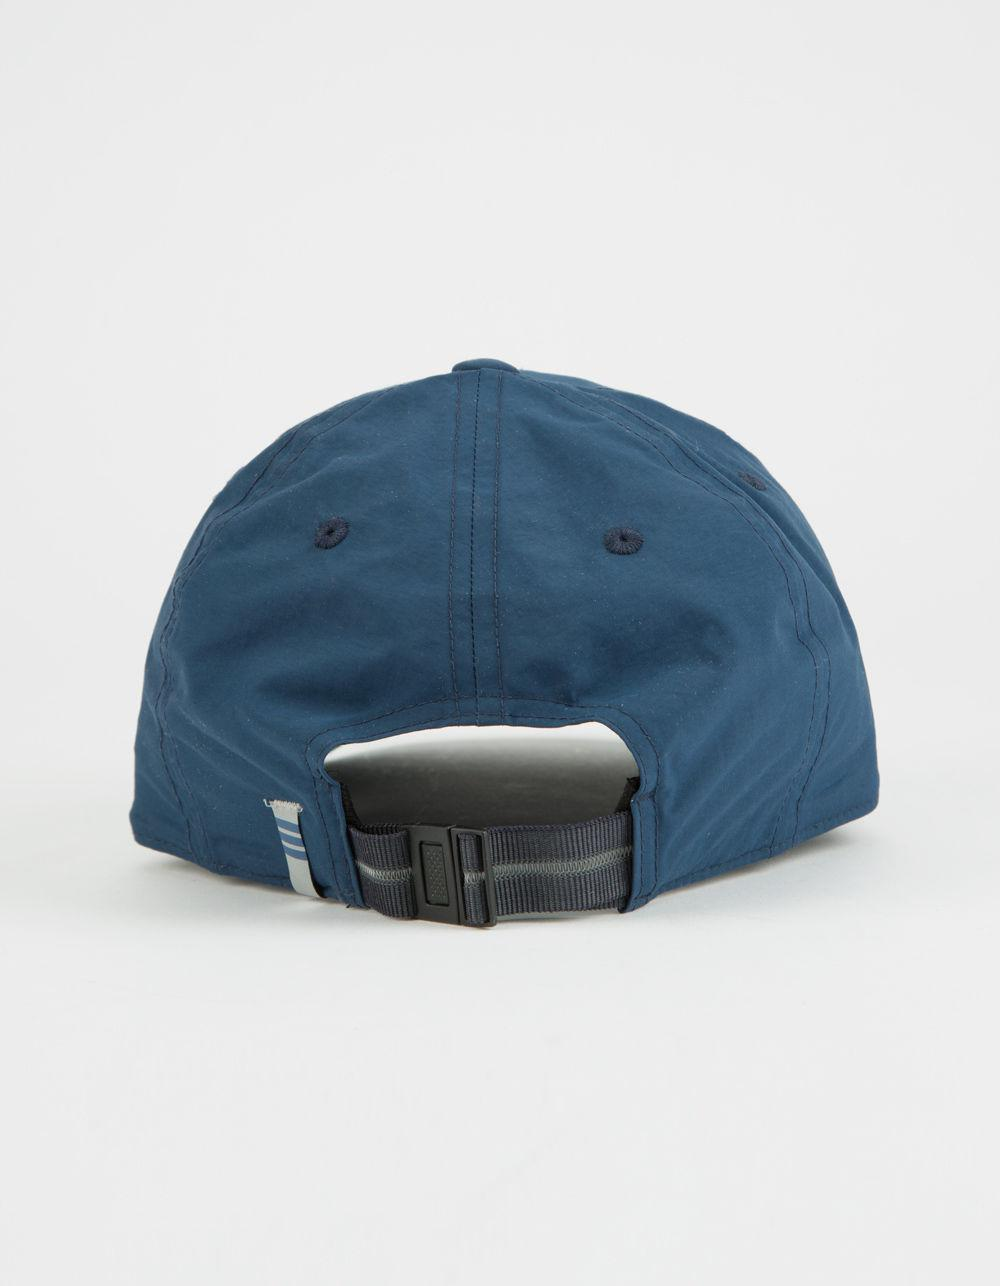 7493e74f398 ... wholesale dealer bcd5e e890e Lyst - Adidas Originals Relaxed Modern Ii  Navy Mens Strapback Hat in ...